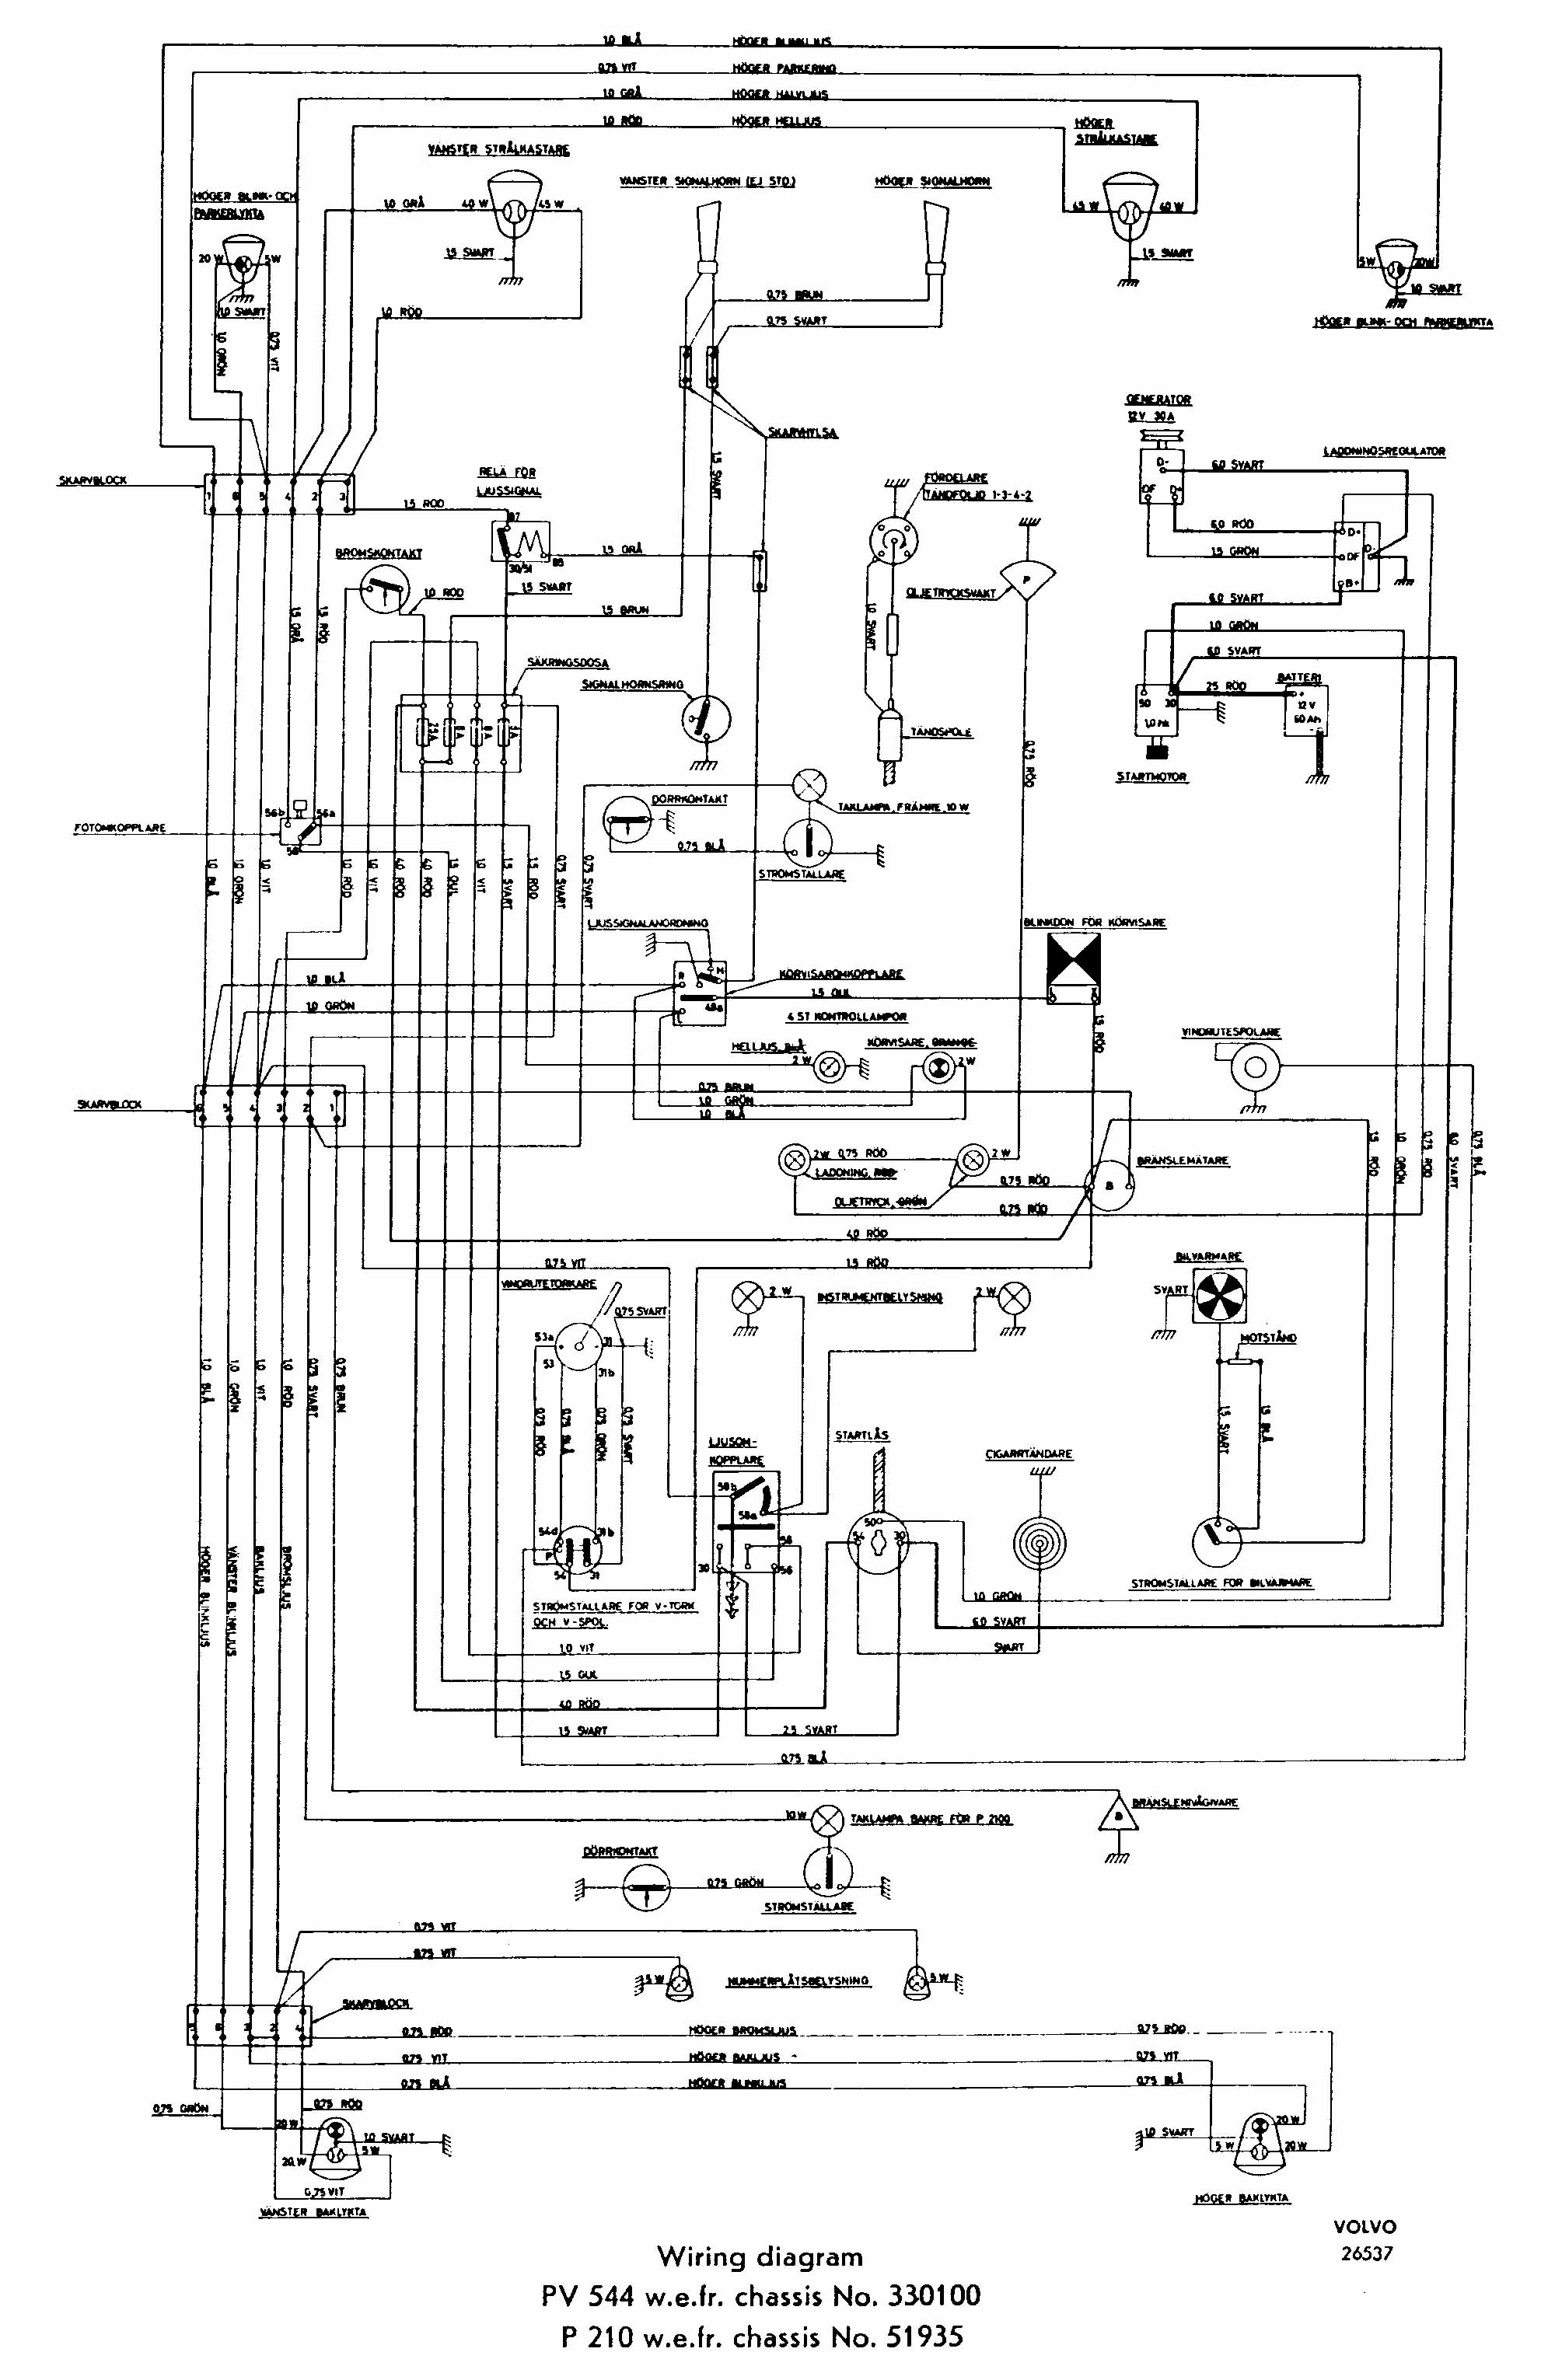 hight resolution of 122s wiring diagram opinions about wiring diagram u2022 rh voterid co volvo s80 wiring diagram